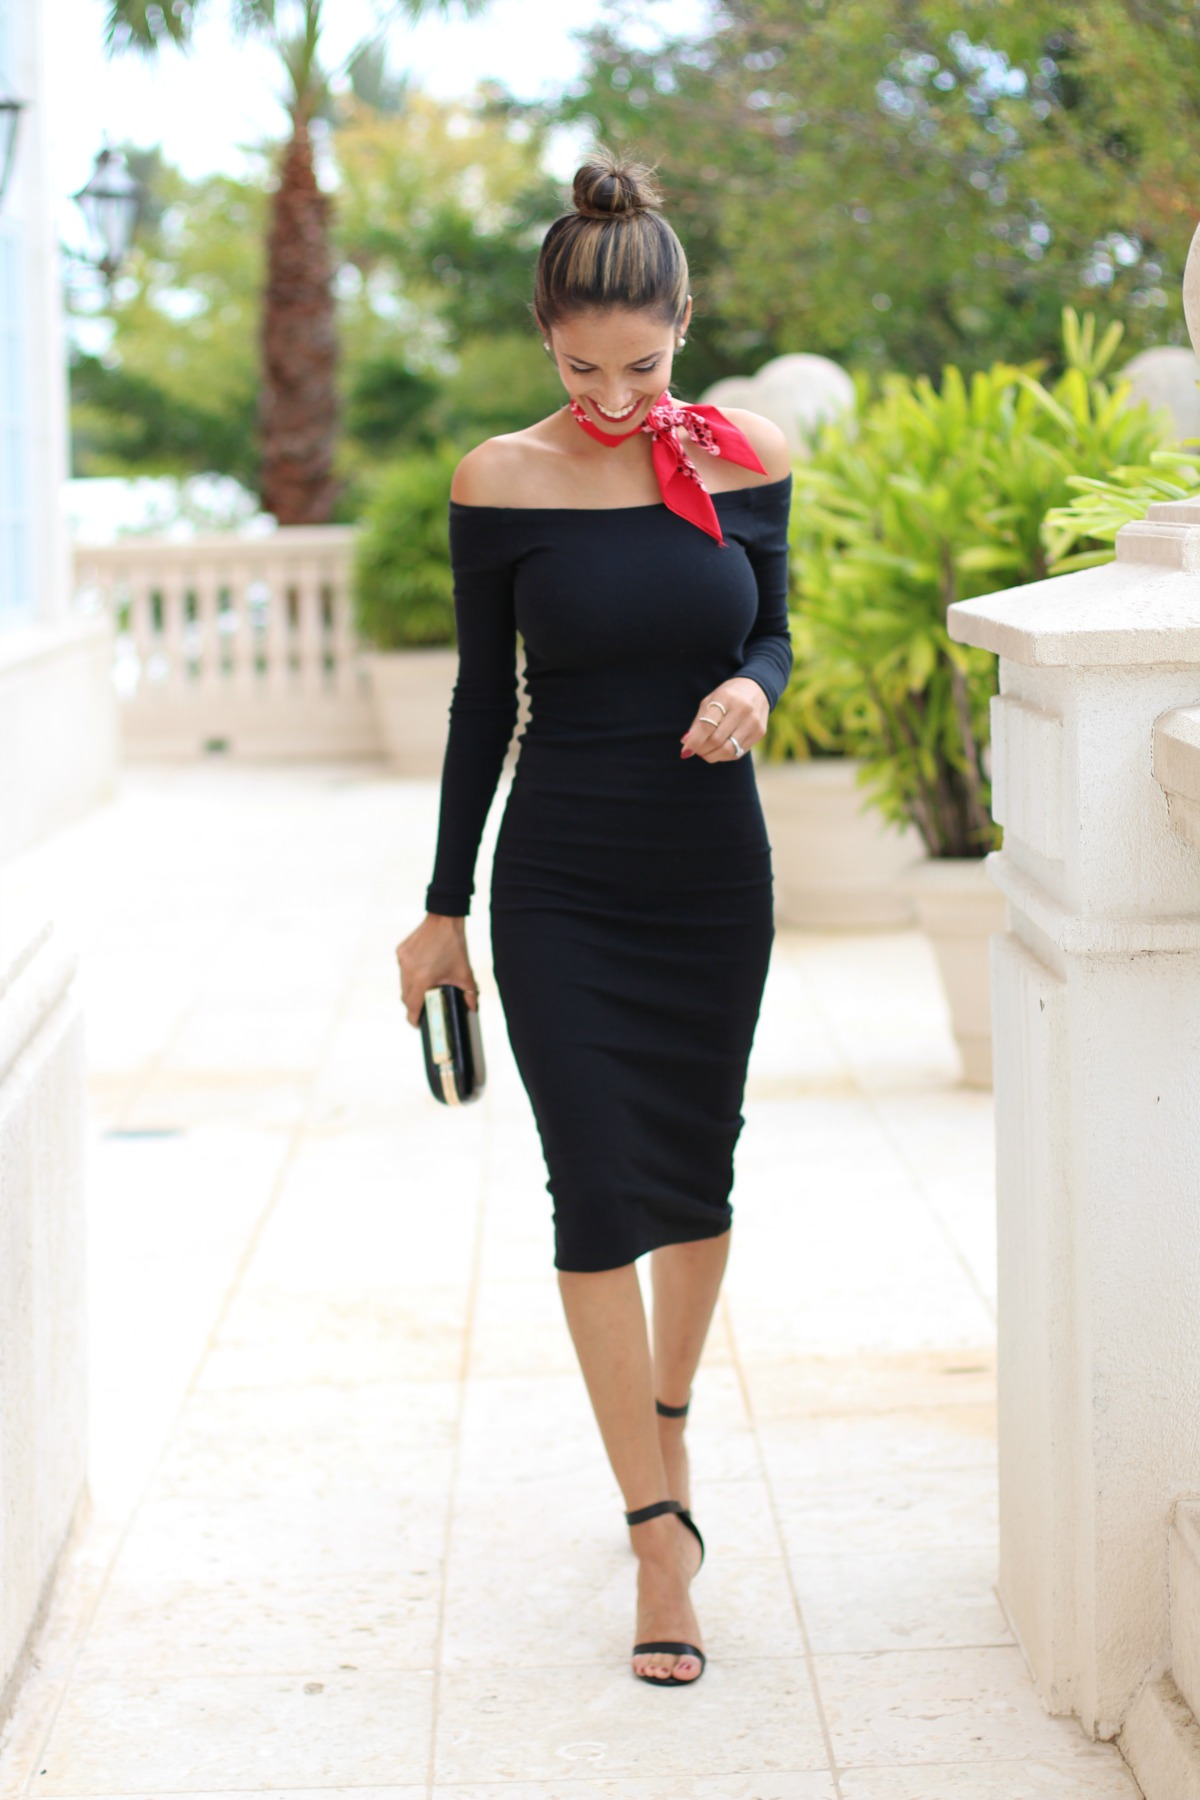 Off the shoulder little black dress with red bandanna and strappy heels